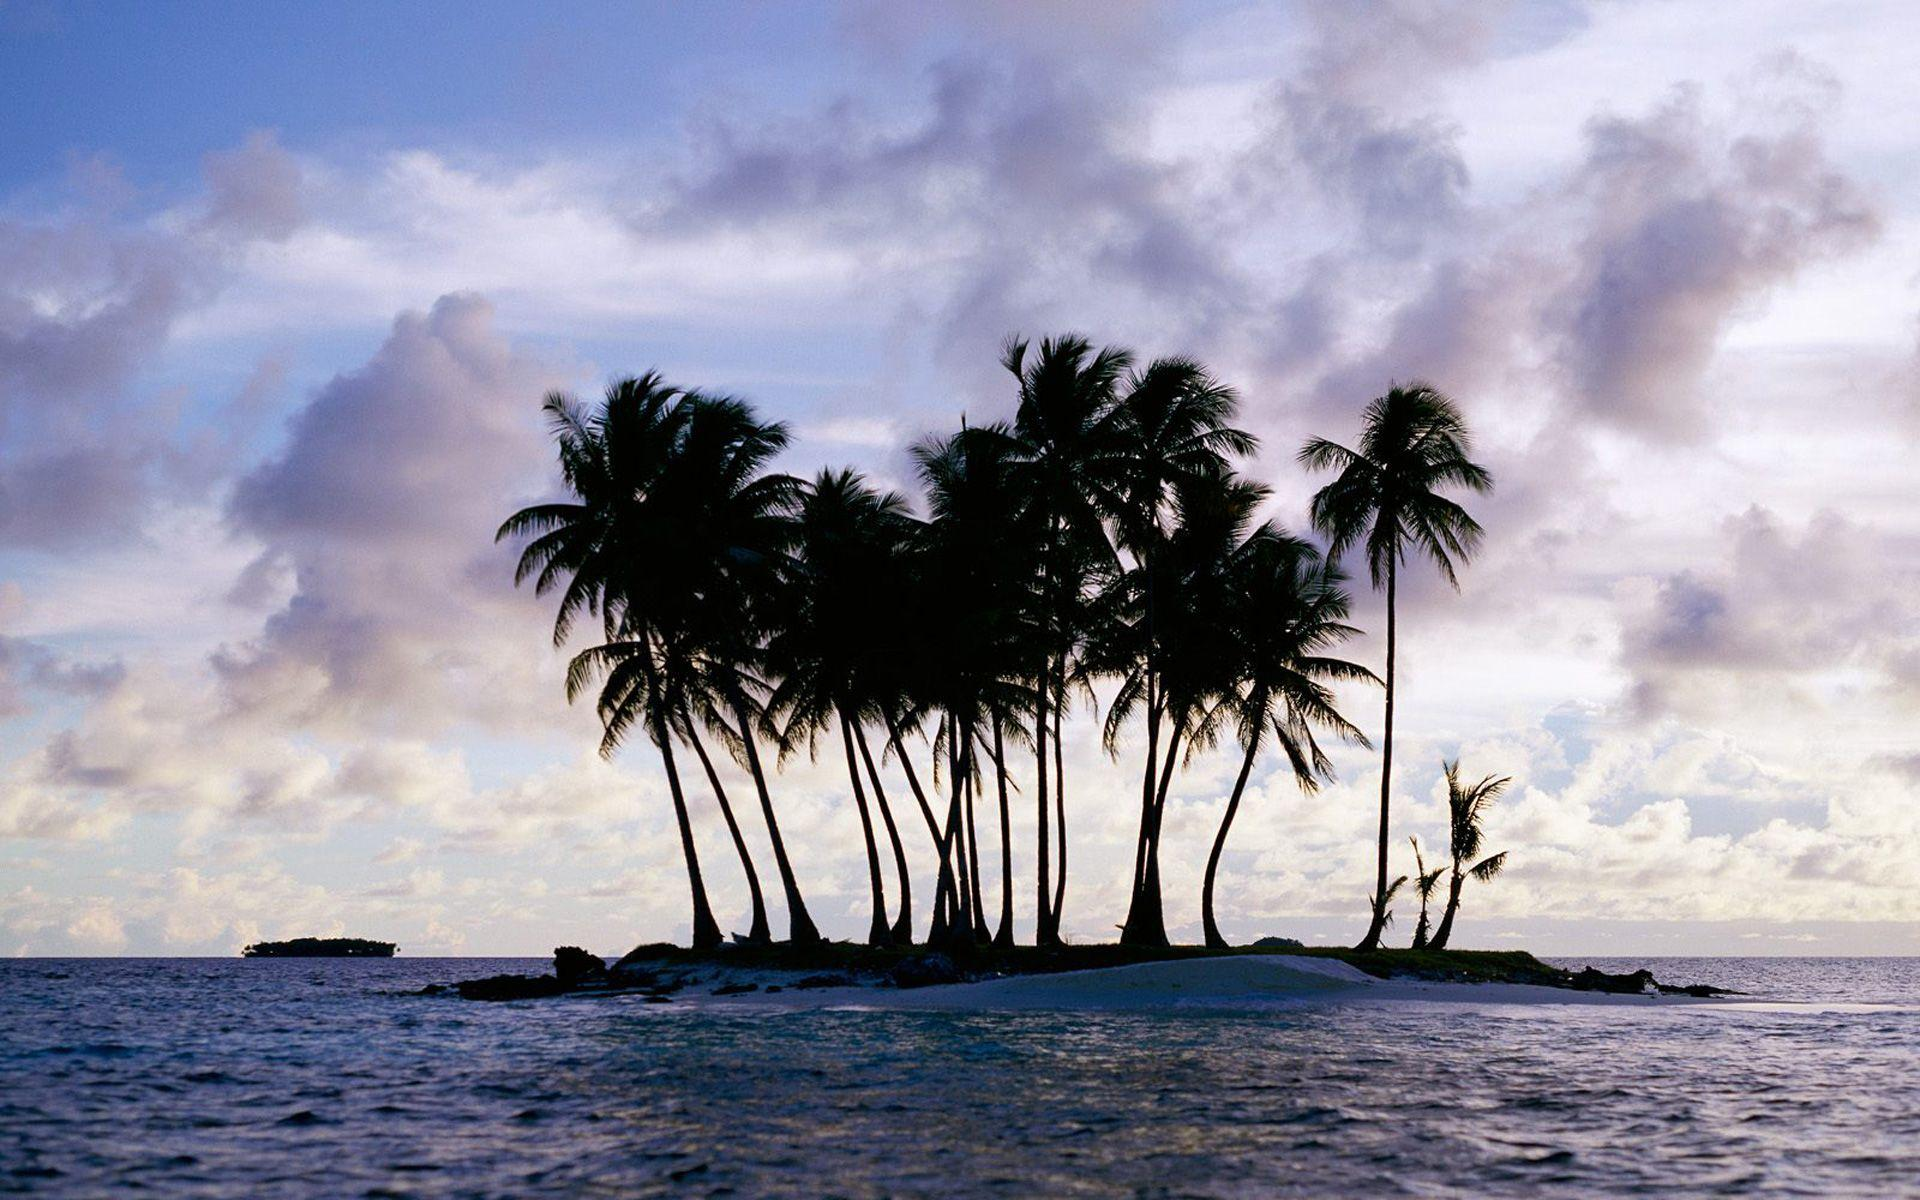 Island wallpaper, Chuuk (Truk), Micronesia - Beach Wallpapers